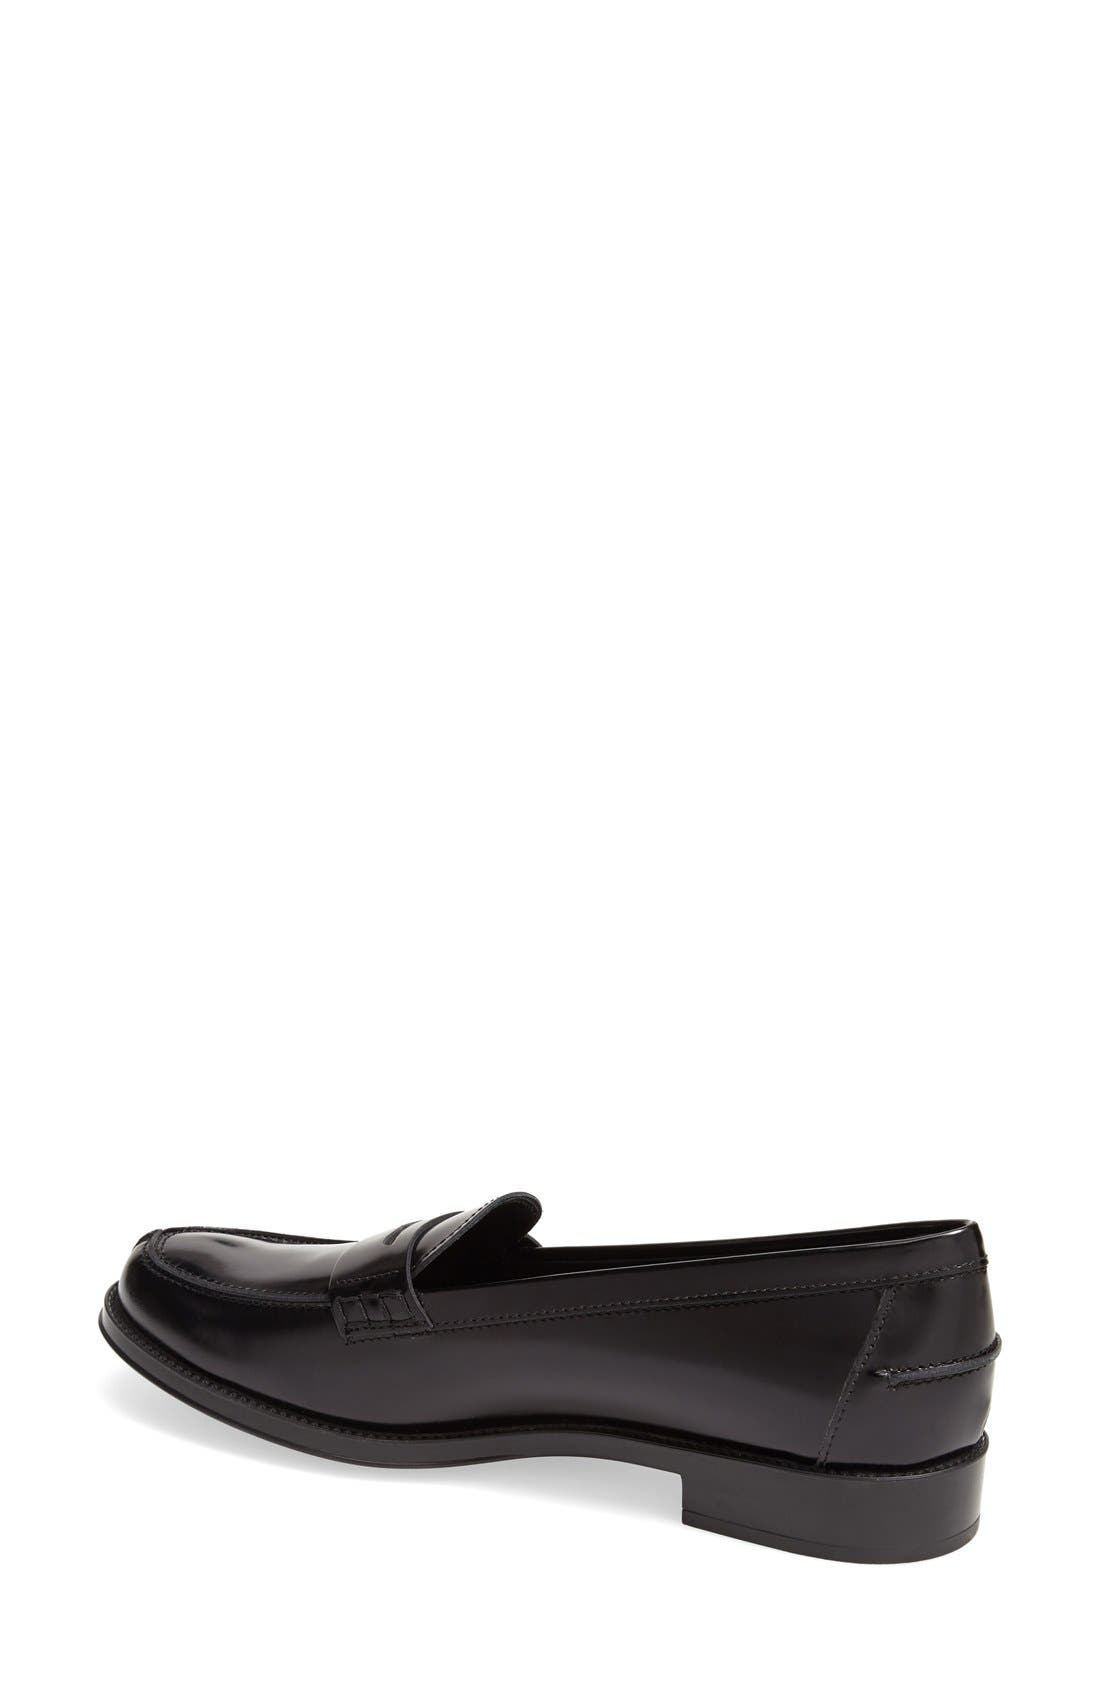 Penny Loafer,                             Alternate thumbnail 3, color,                             BLACK LEATHER